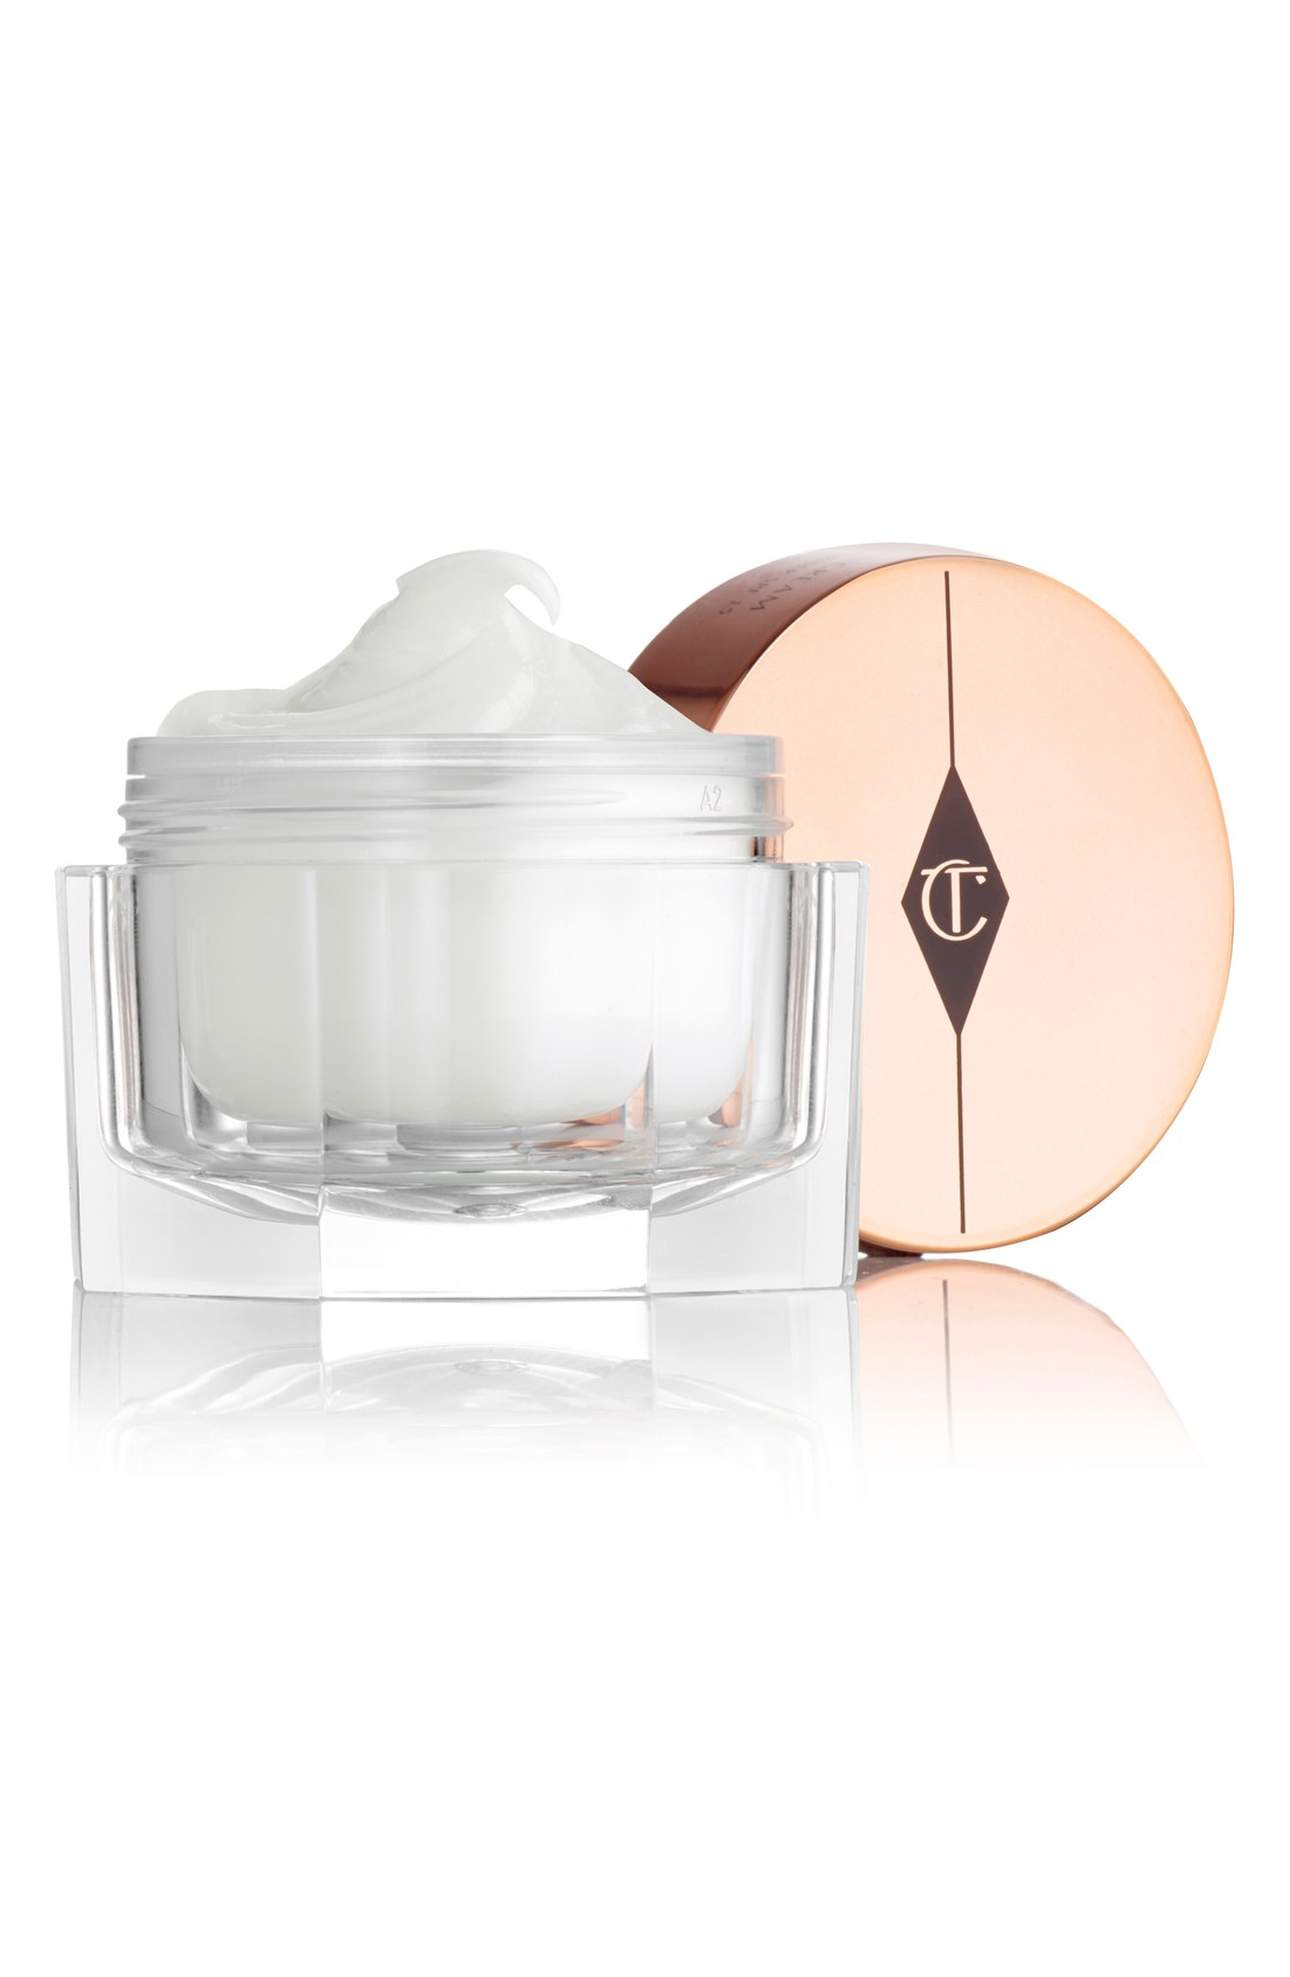 <p>Charlotte's Magic Cream Treat and Transform Moisturizer - $100+. Hey moms and grandmas, this one is for you! This moisturizer will totally revive your skin and give it new life. It's a gift that keeps on giving! Plus the woman behind it is a famous celebrity makeup artist who has been keeping famous people looking younger for years! Prices depends on the size. Purchase at Nordstrom. (Image: Nordstrom){&amp;nbsp;}<br></p><p></p>